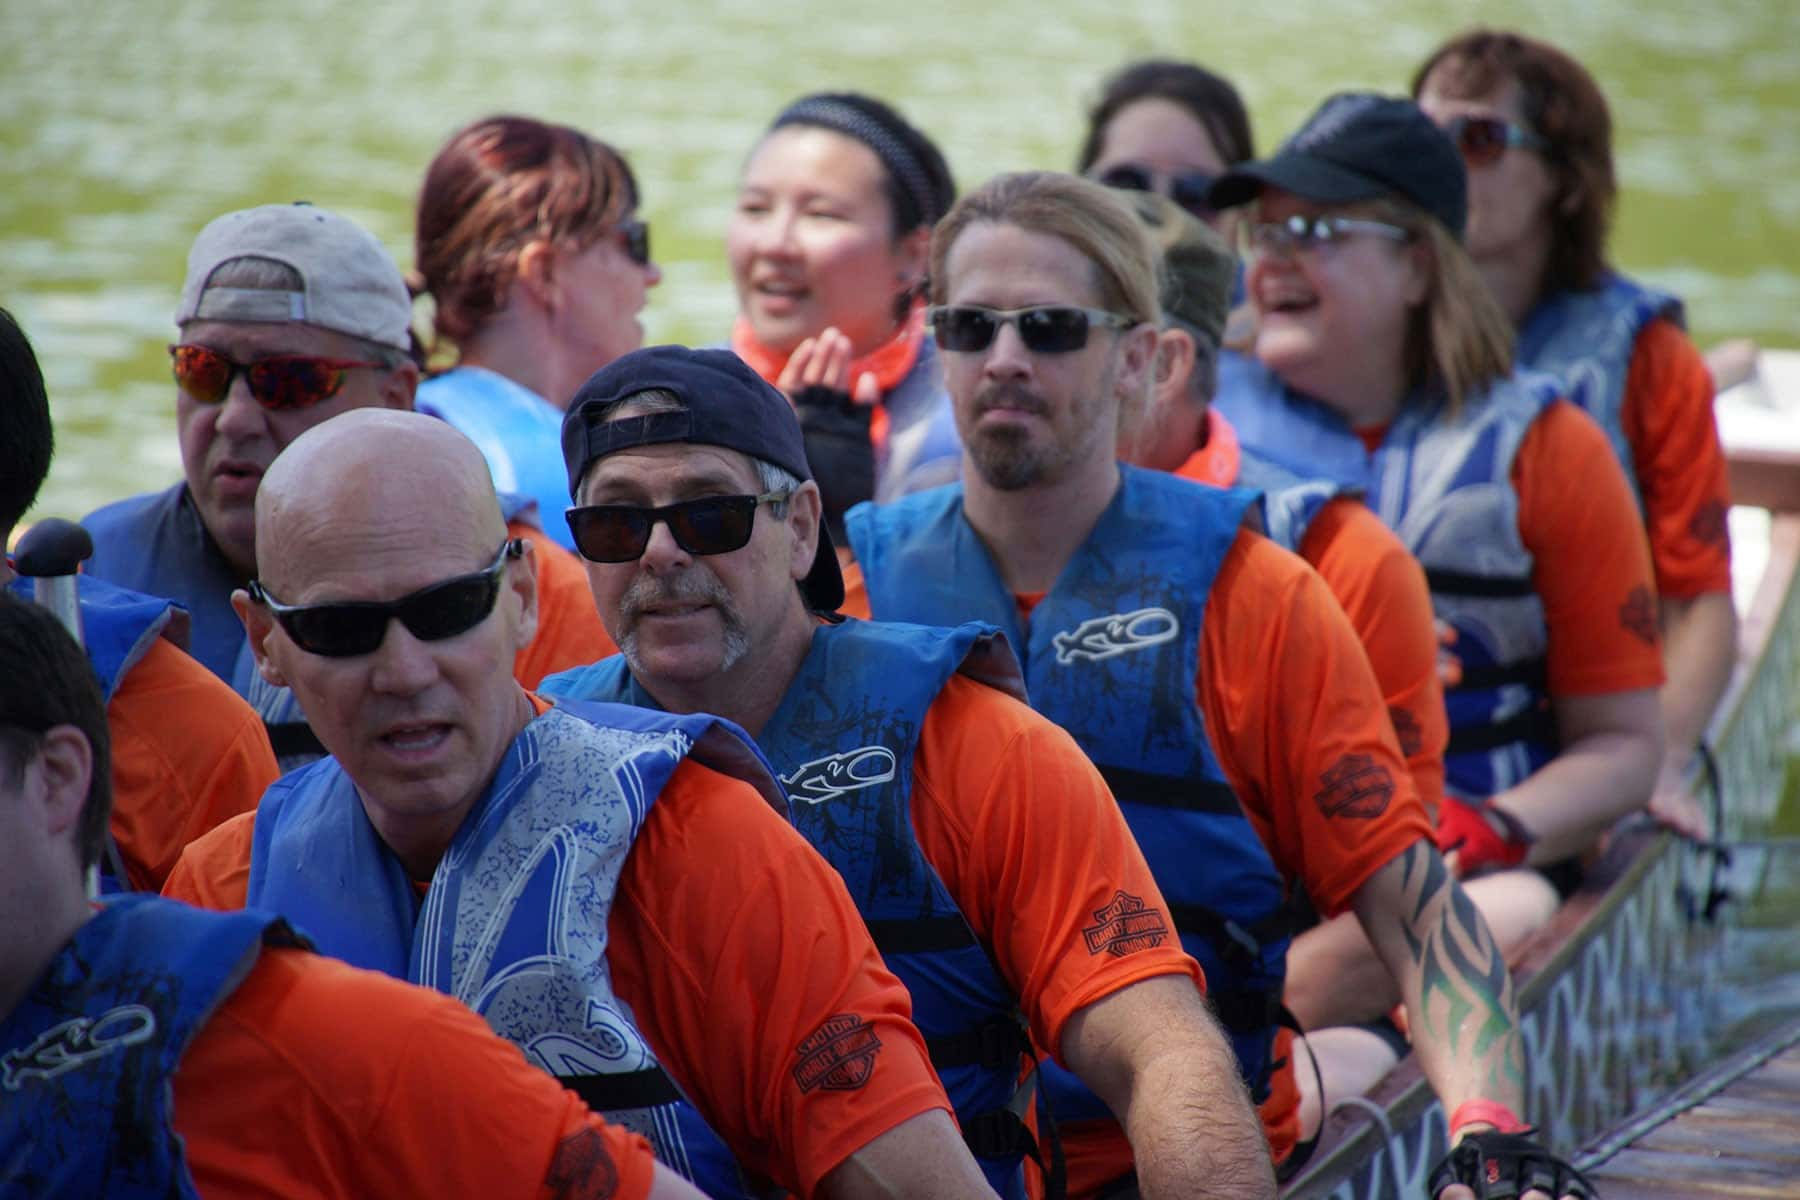 080116_dragonboat_album_01_04